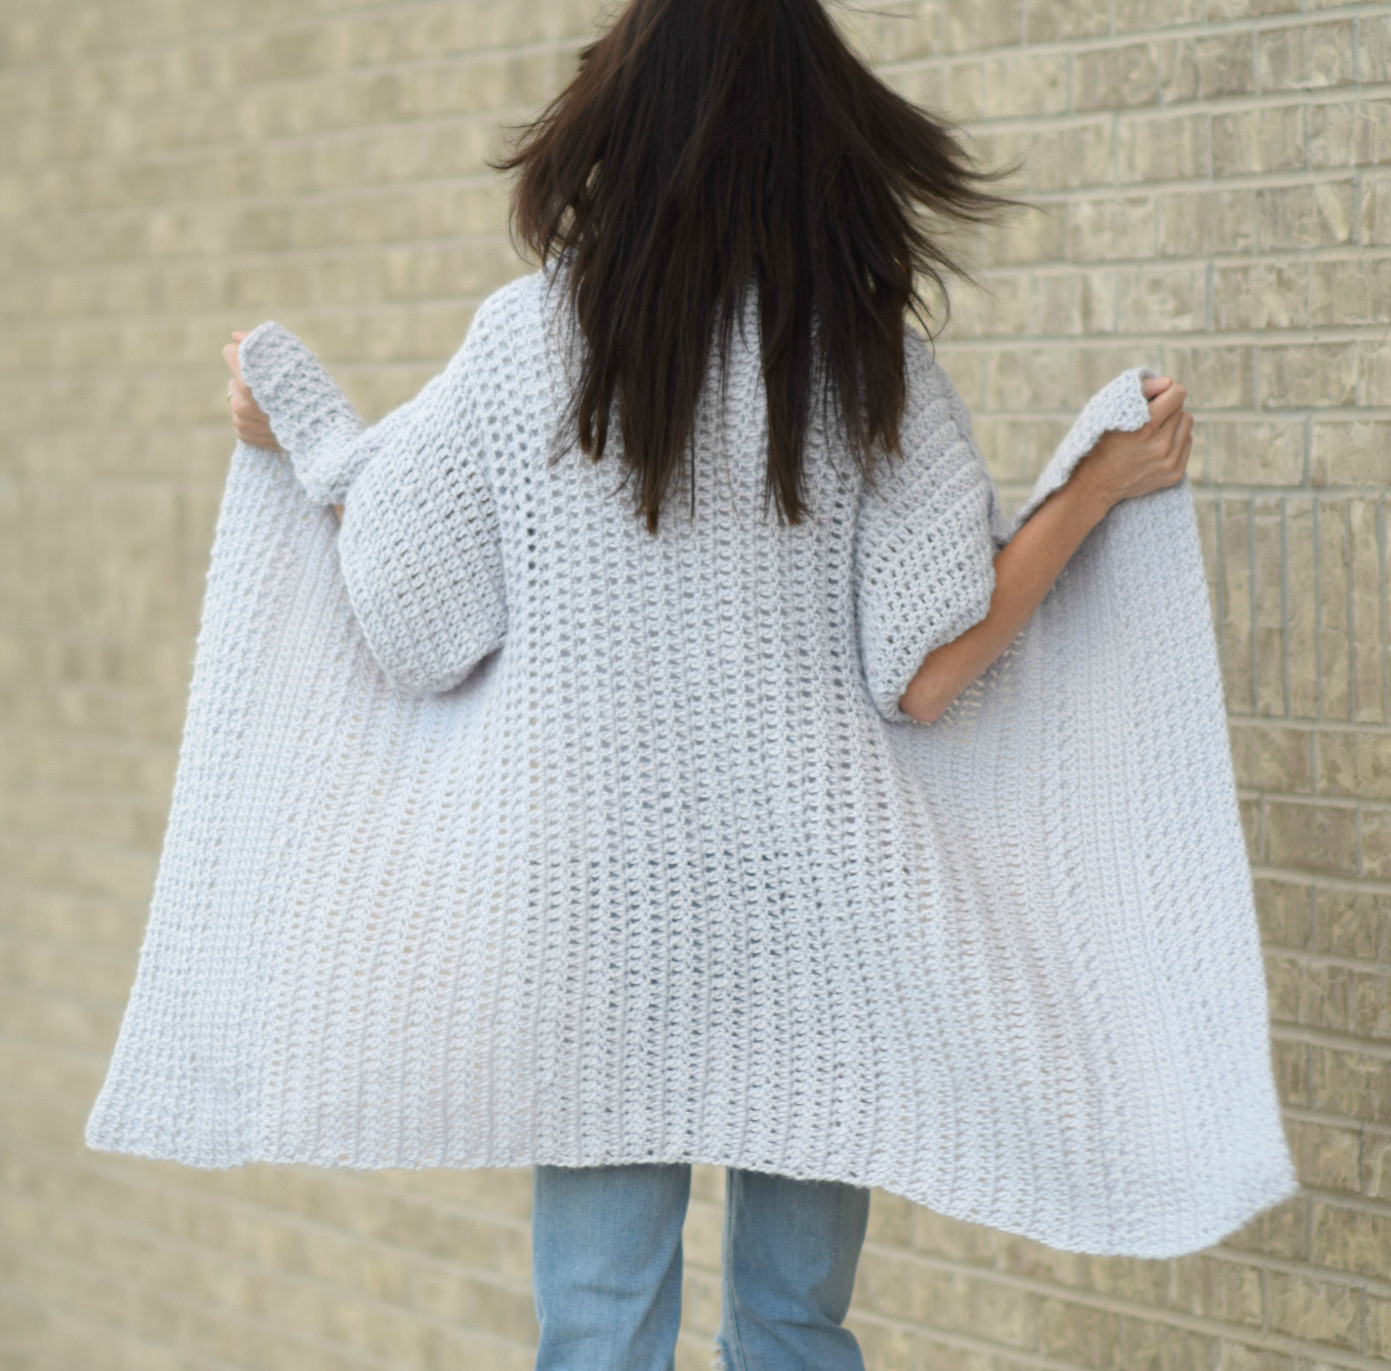 Crochet Cardigan Pattern Awesome Cascading Kimono Cardigan Crochet Pattern – Mama In A Stitch Of Perfect 41 Ideas Crochet Cardigan Pattern